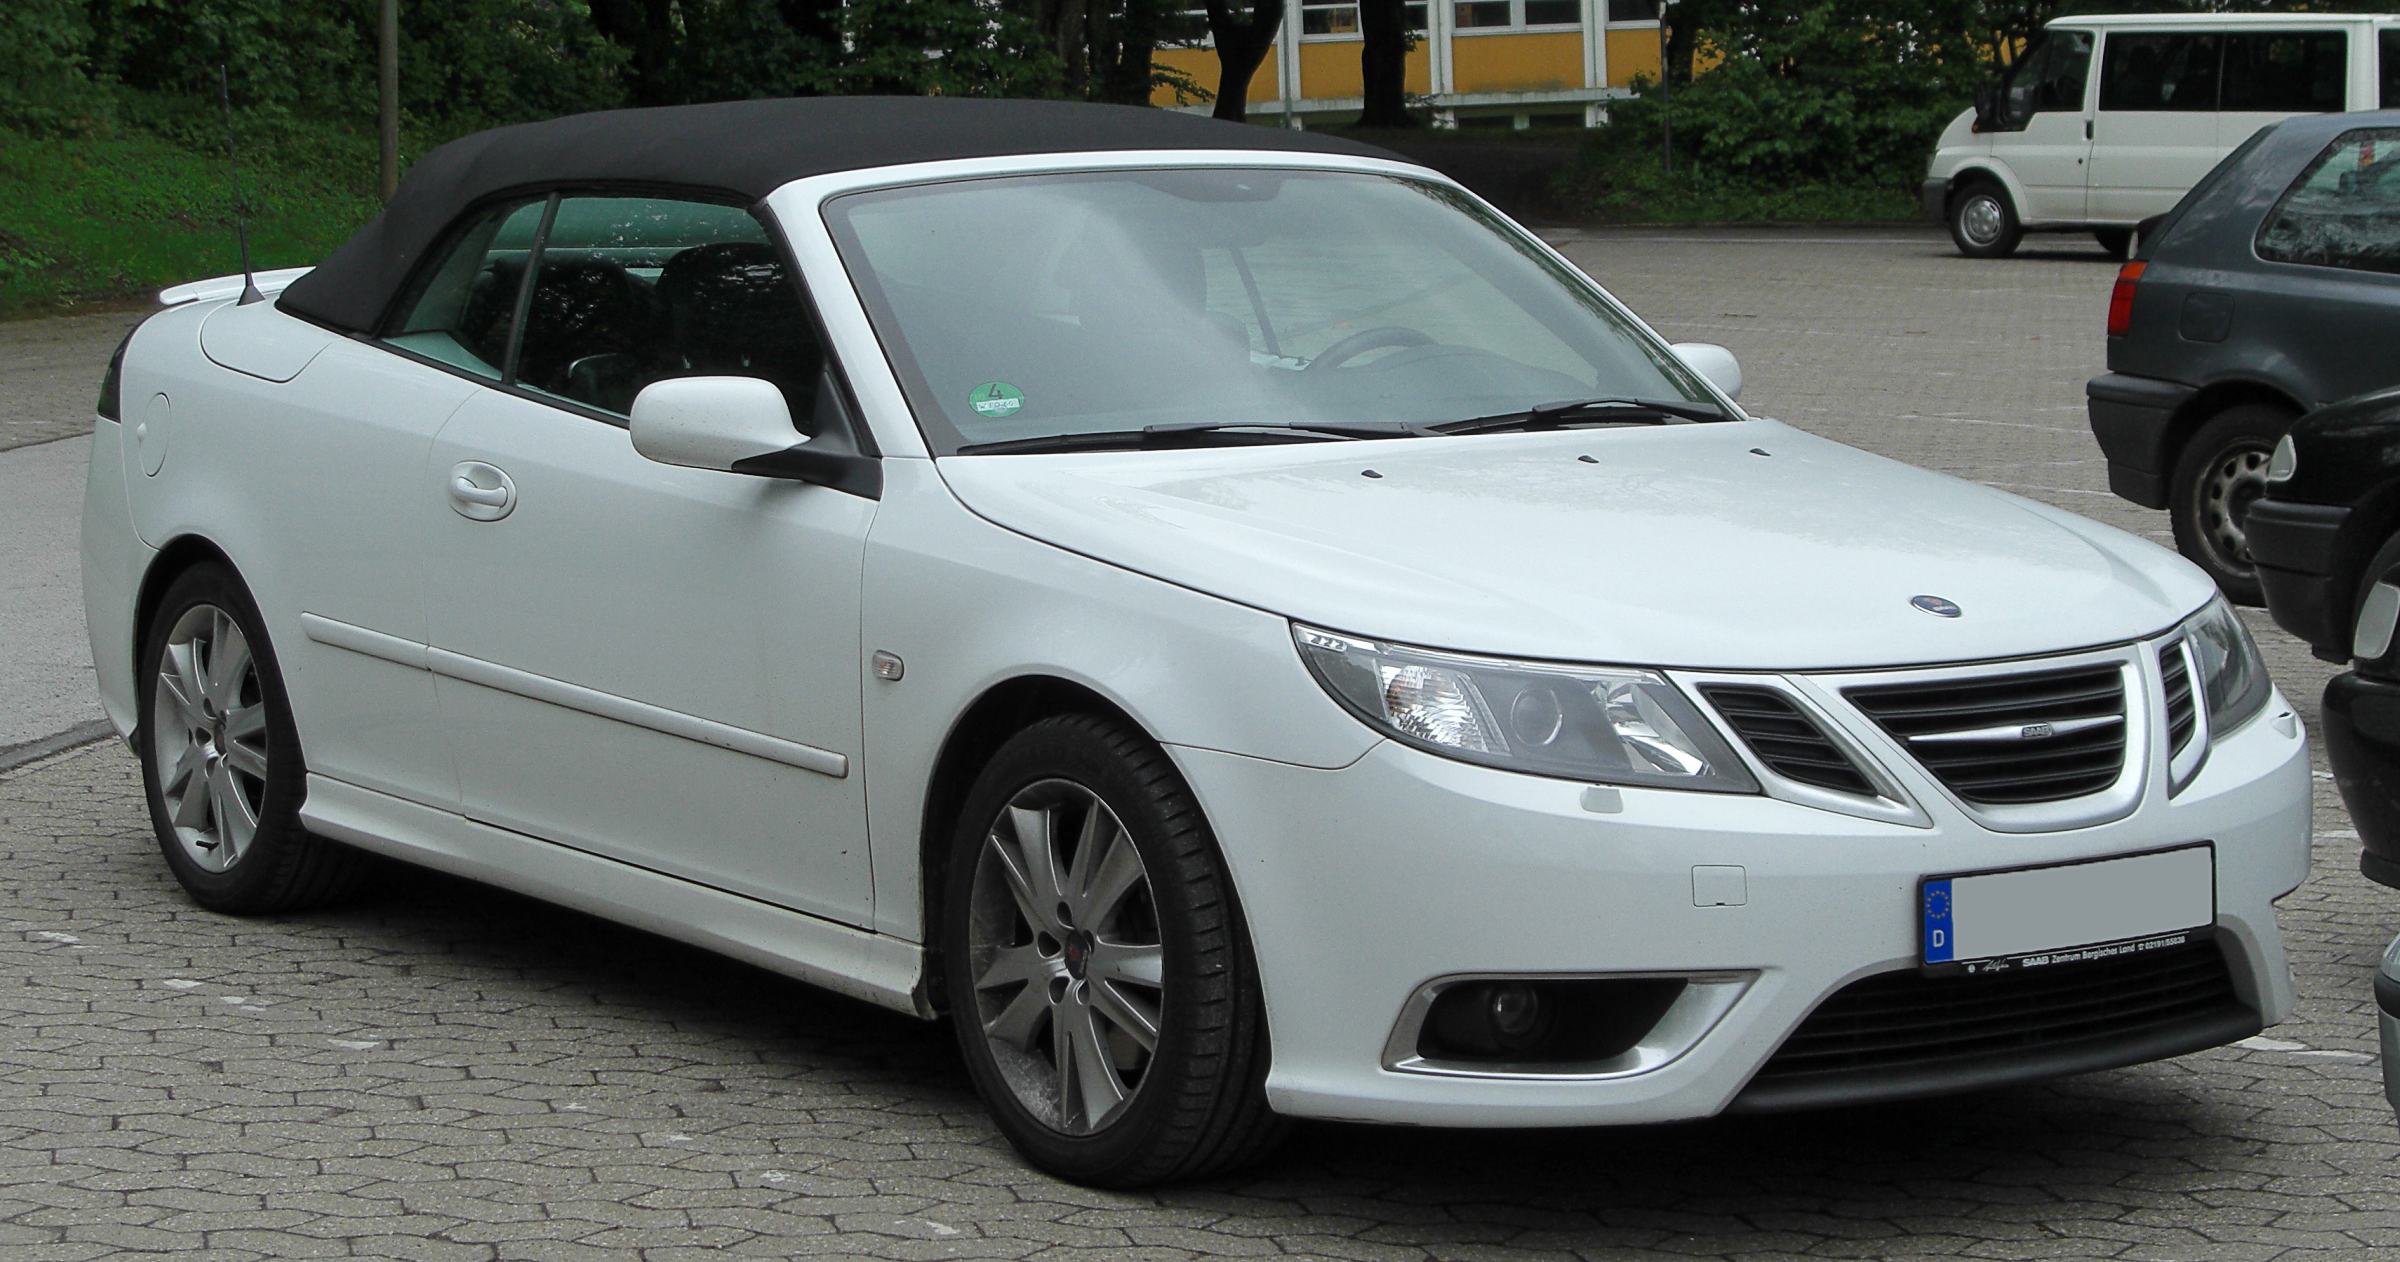 file saab 9 3 cabrio aero ii facelift front wikimedia commons. Black Bedroom Furniture Sets. Home Design Ideas